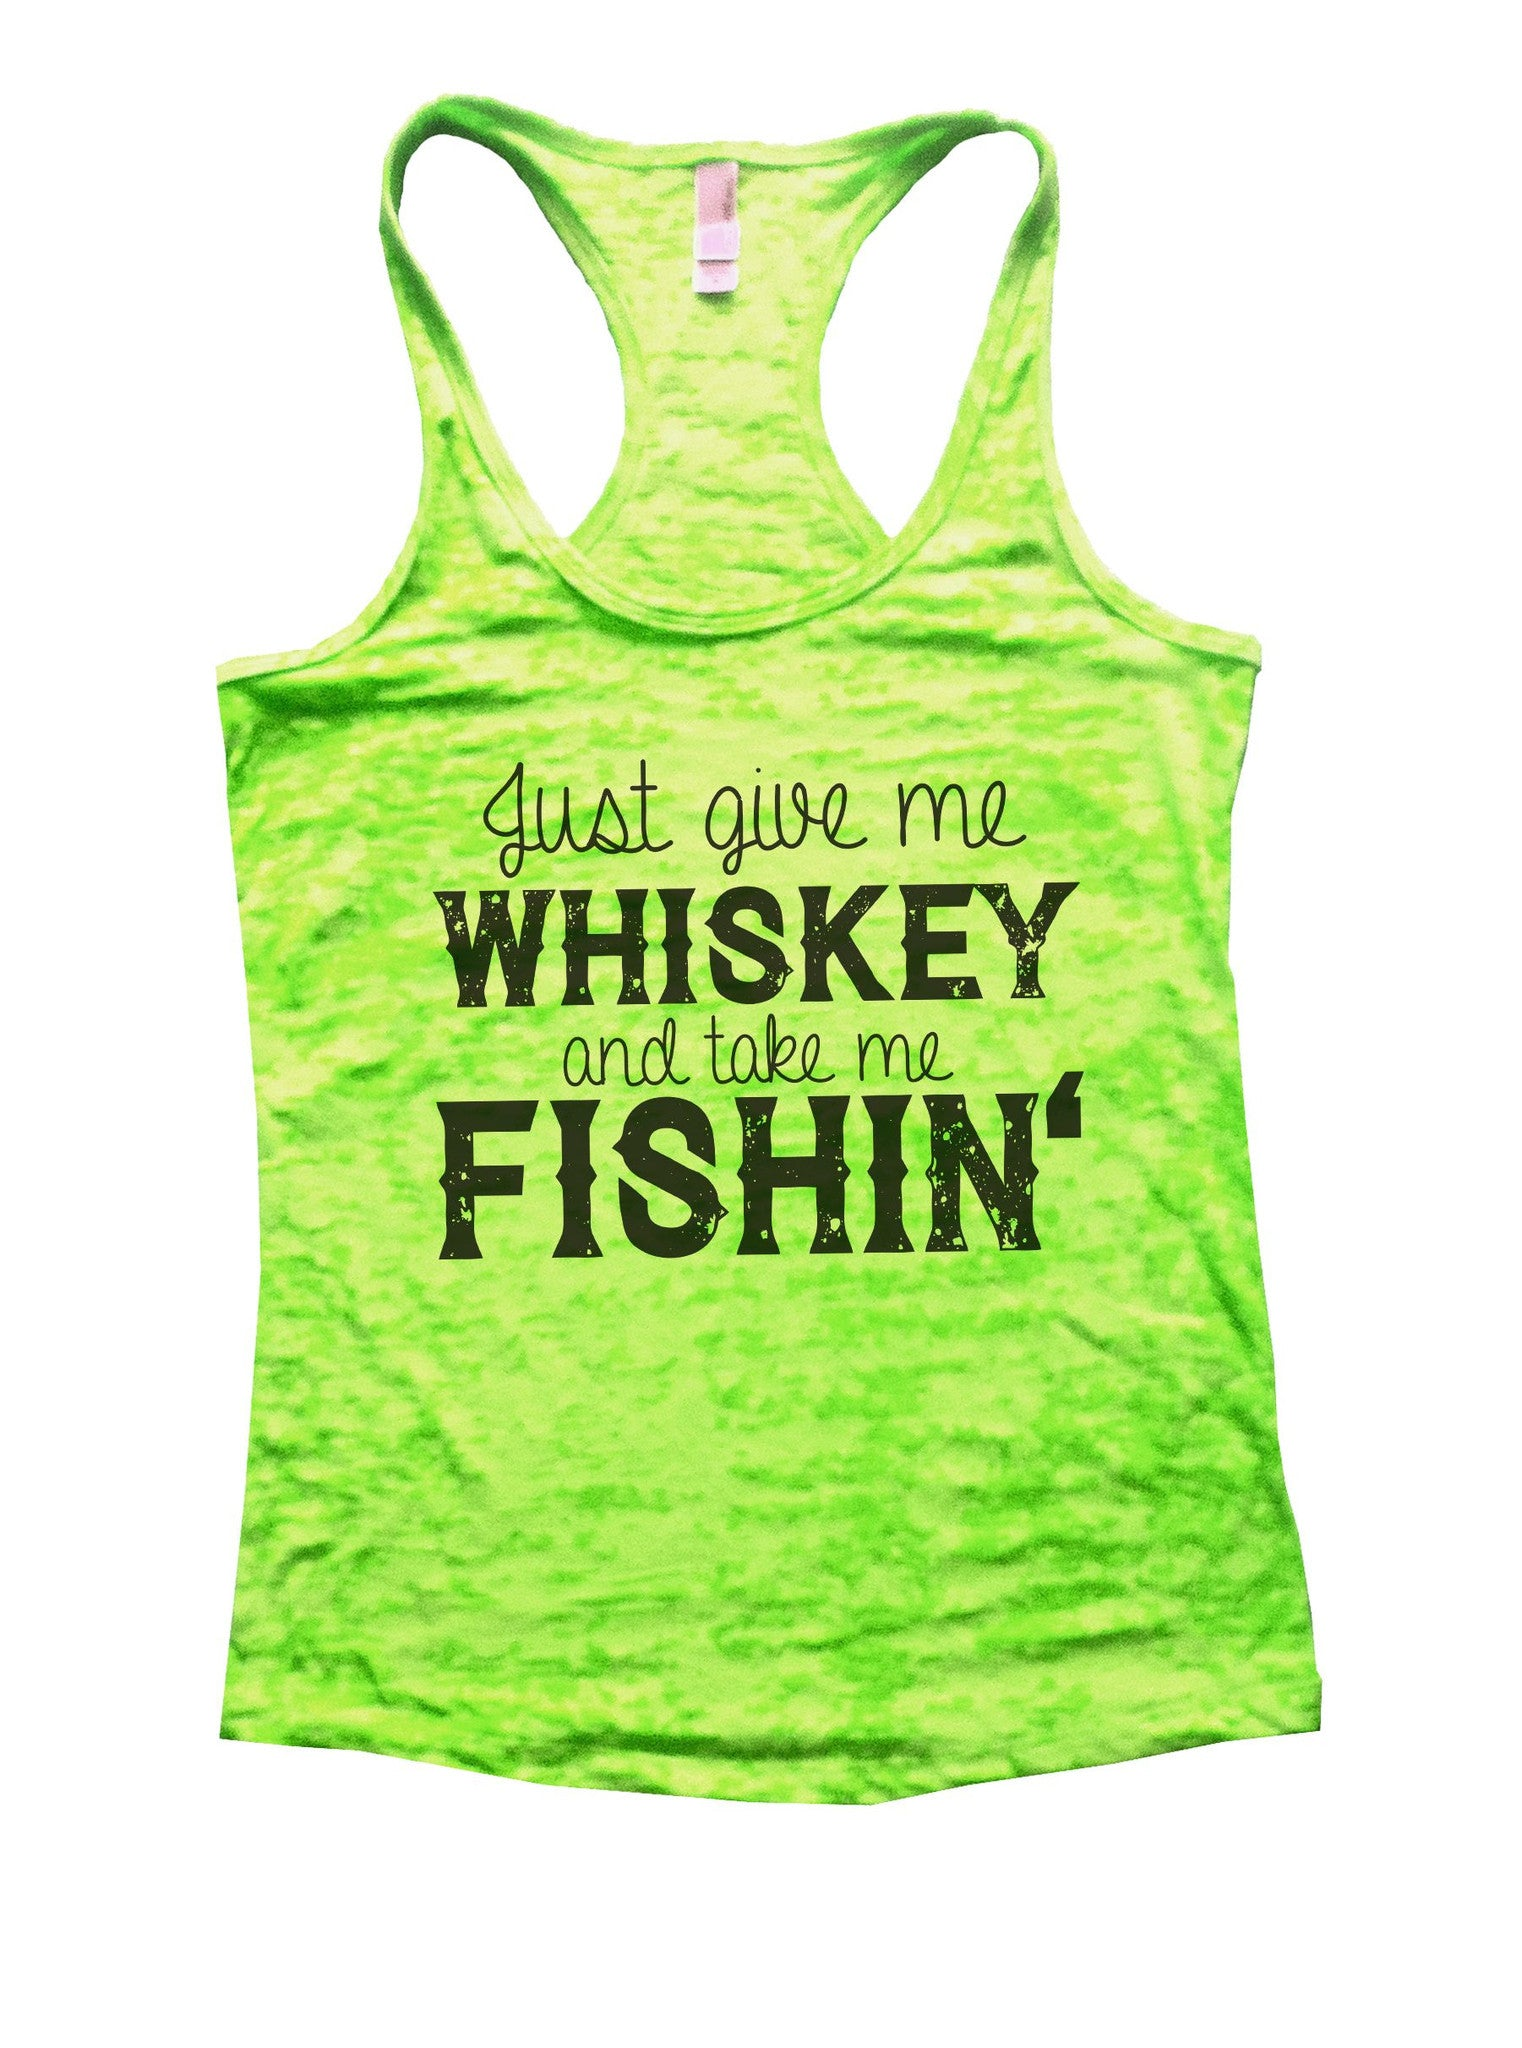 Just Give Me Whiskey And Take Me Fishin Burnout Tank Top By BurnoutTankTops.com - 1012 - Funny Shirts Tank Tops Burnouts and Triblends  - 1